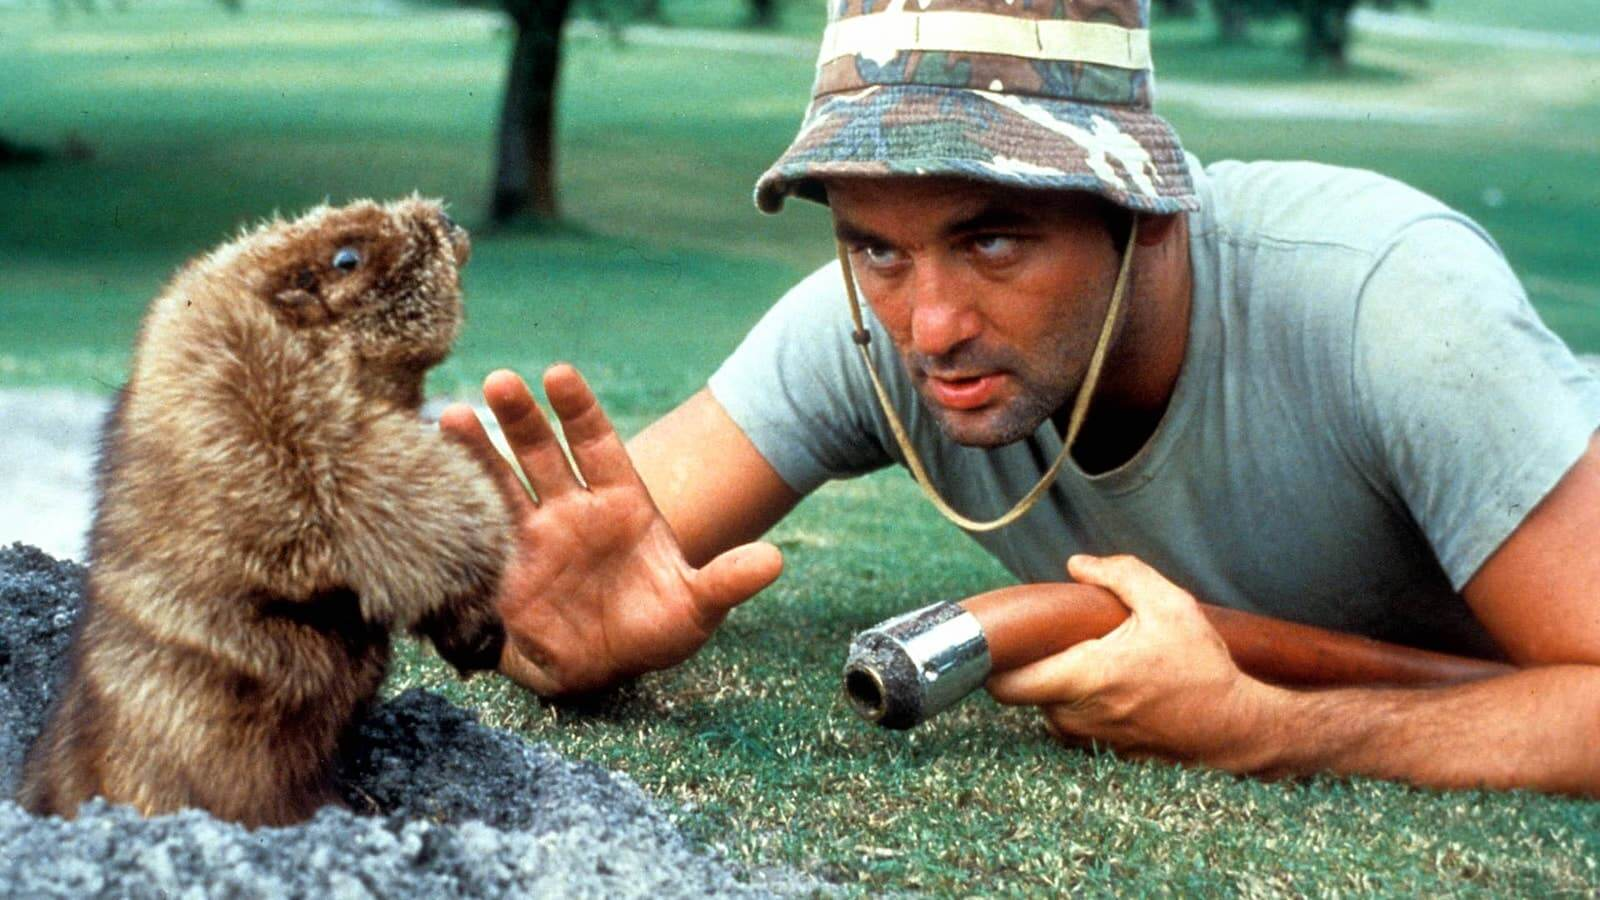 Best Comedy Movies of all Time- Caddyshack